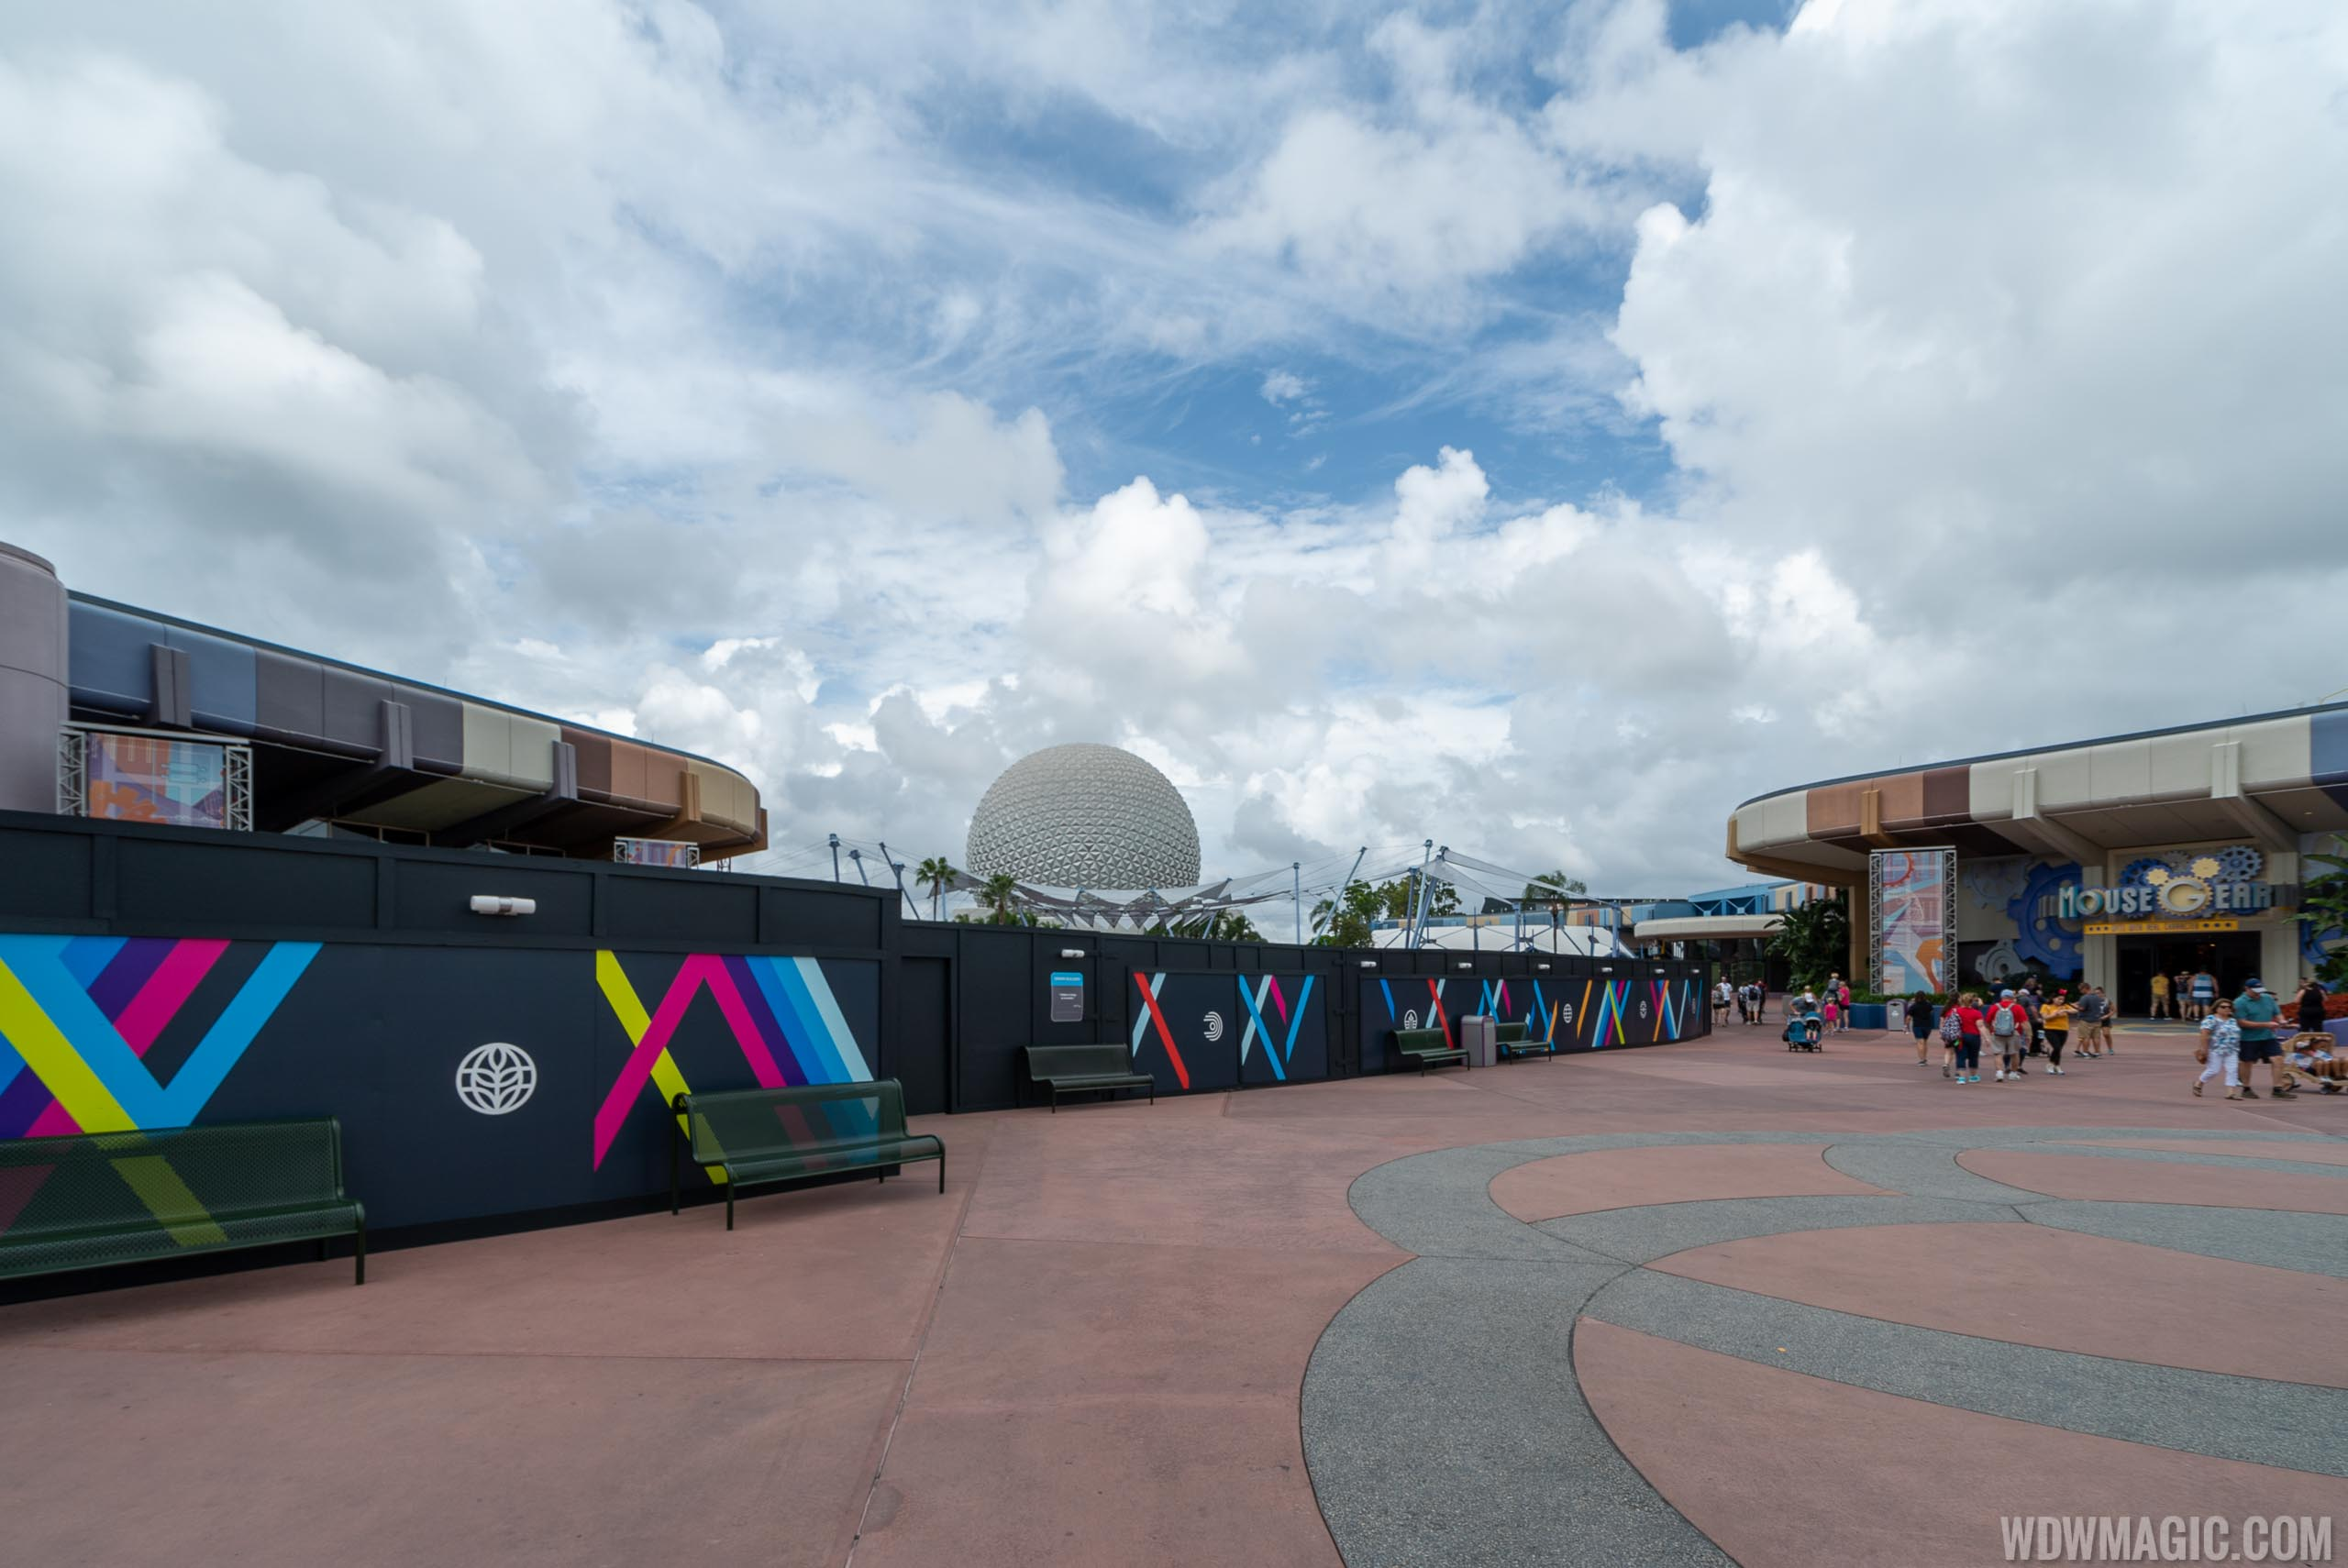 Epcot central area construction October 2019 - Looking toward Fountain of Nations